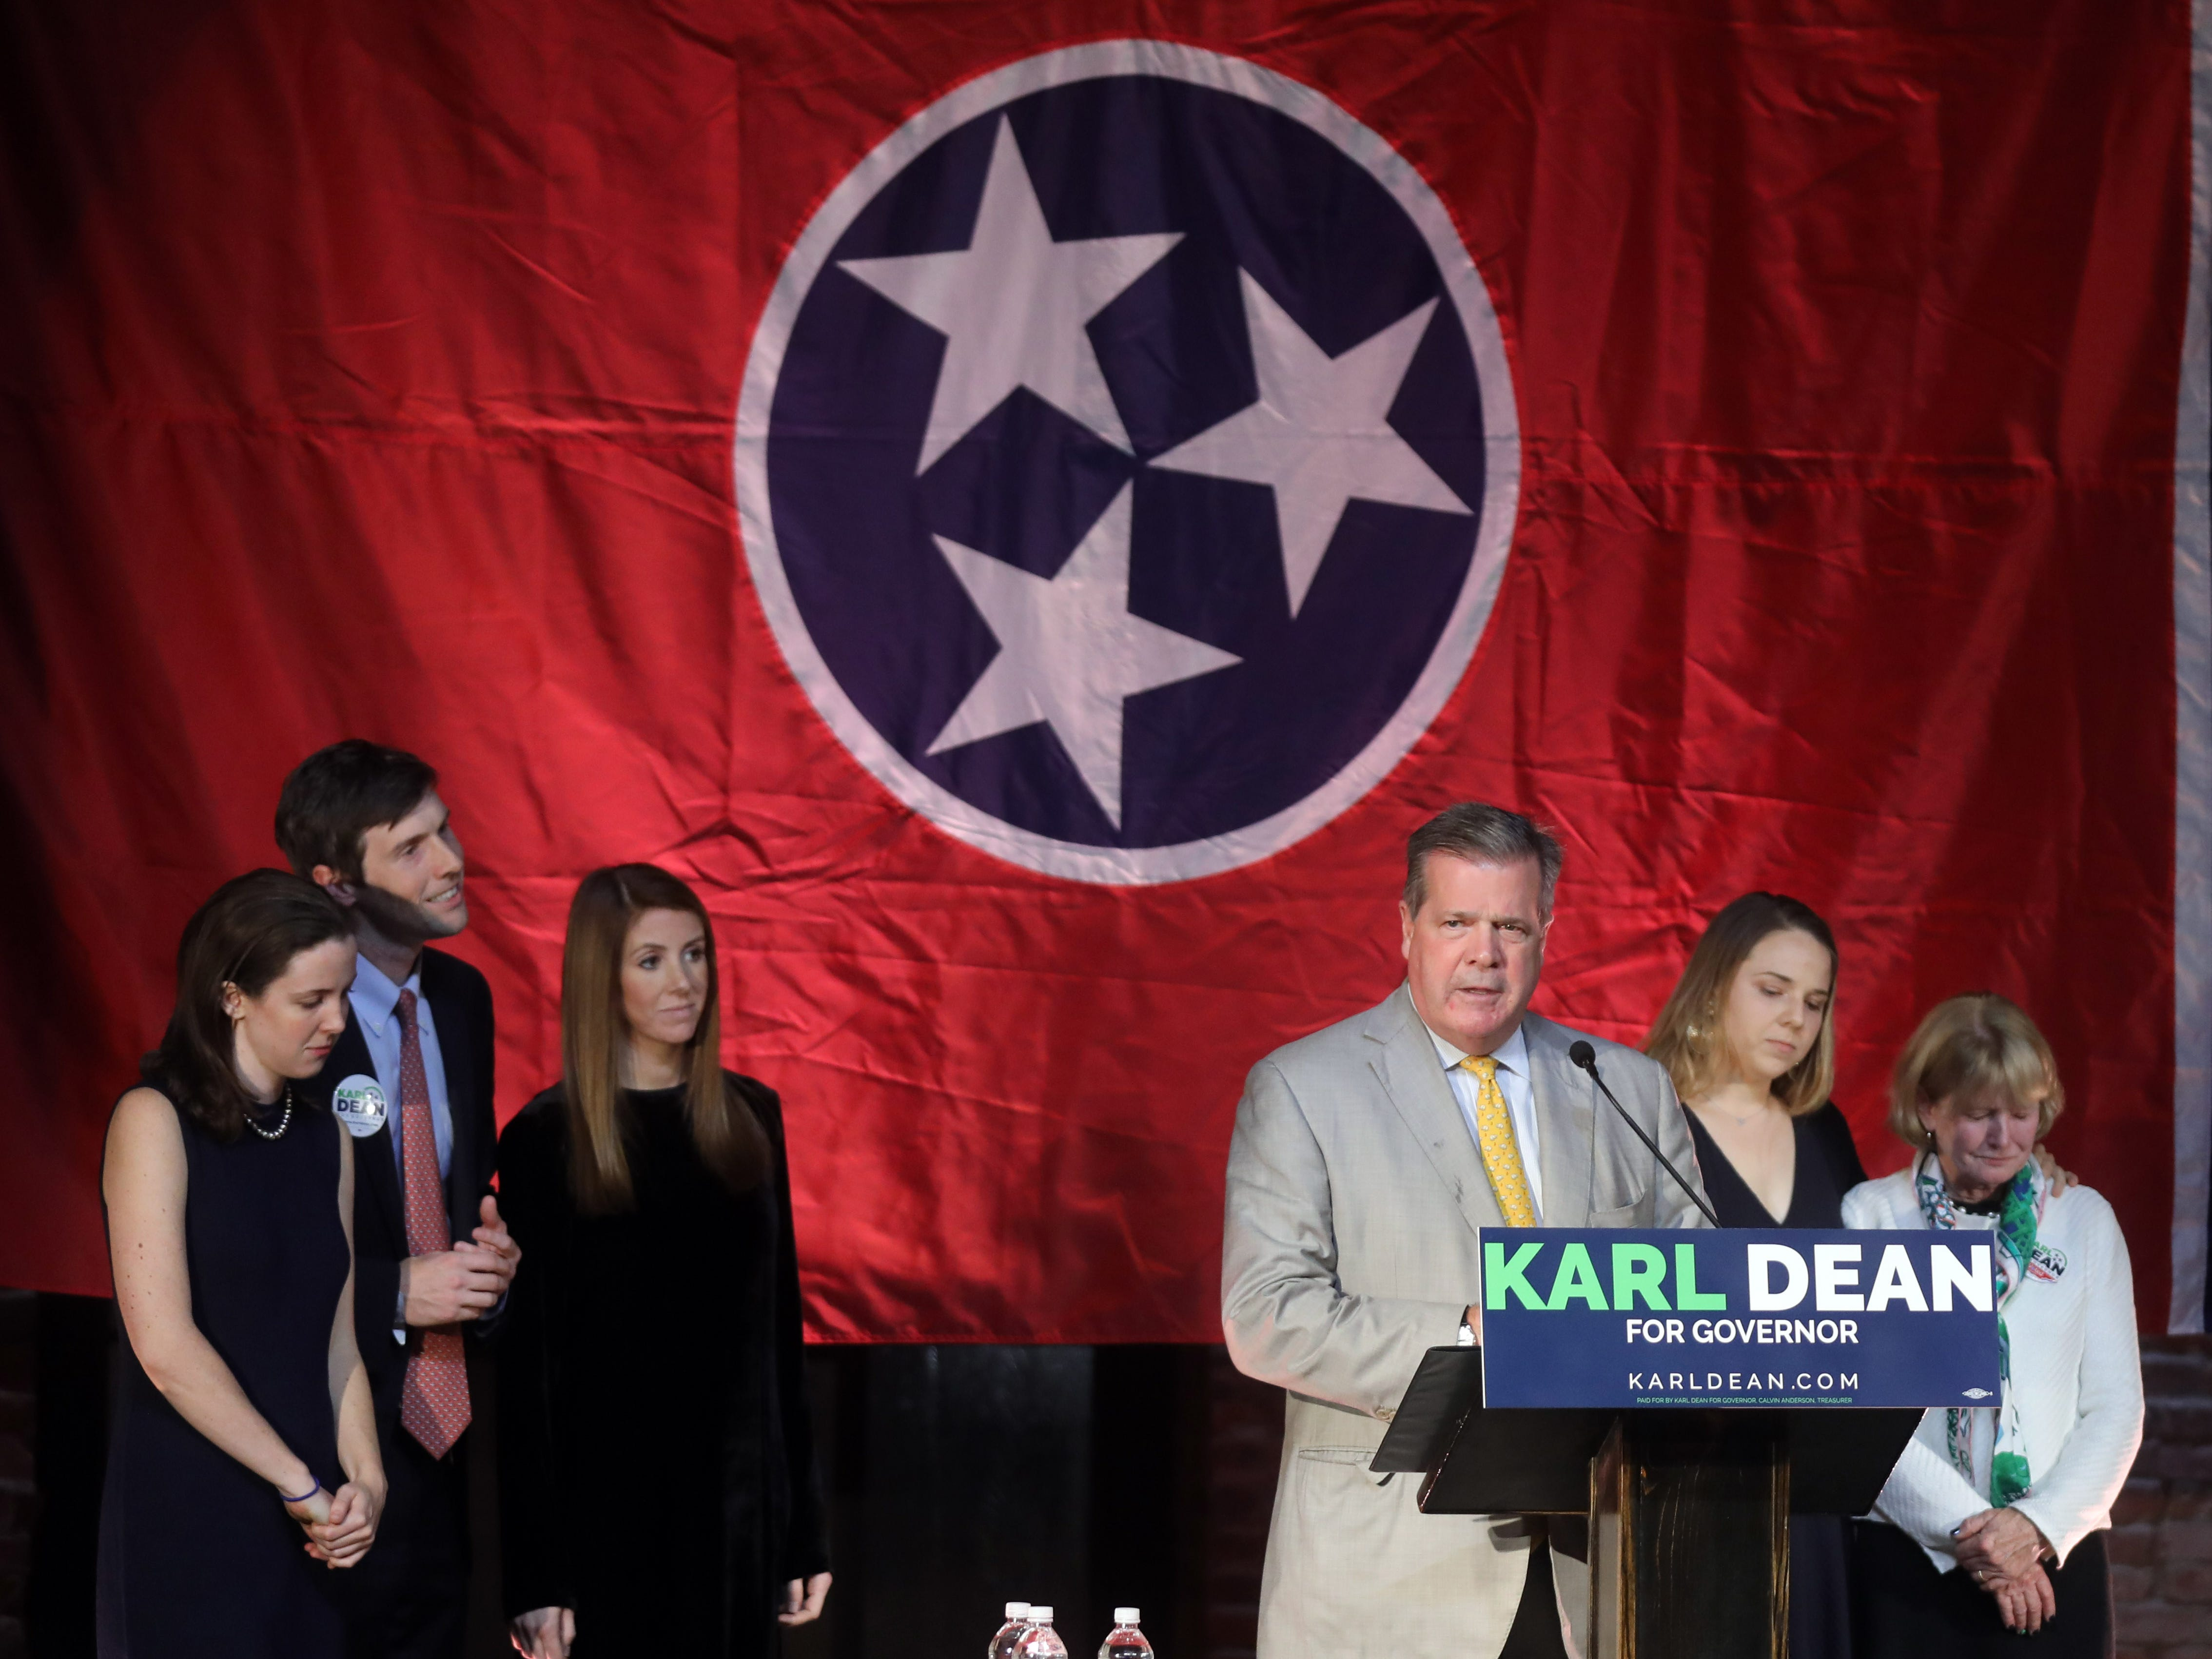 Karl Dean speaks during his campaign party held at Clementine Tuesday, November 6, 2018.